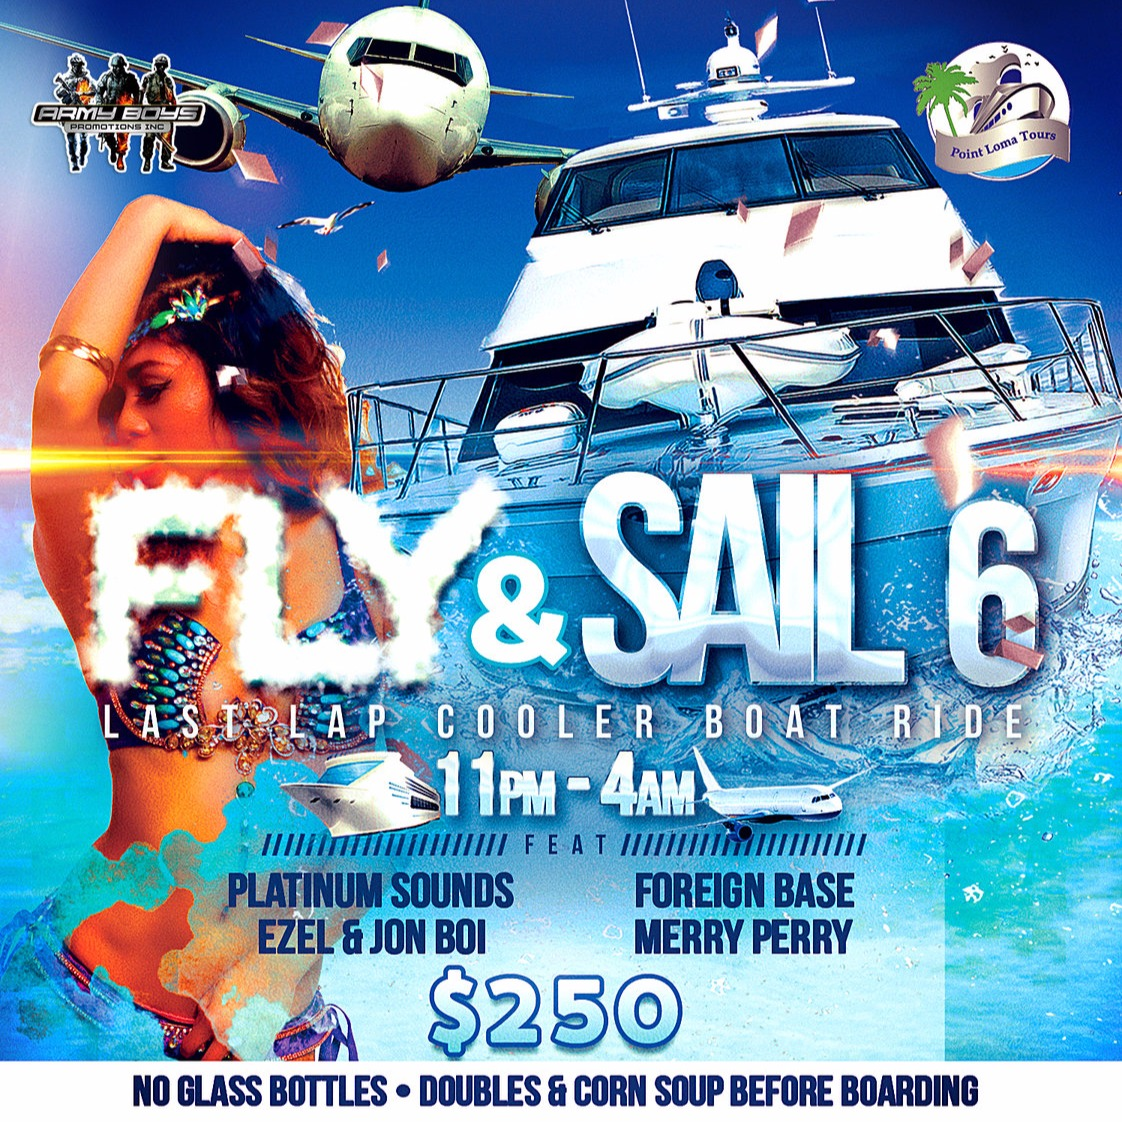 FLY AND SAIL 6